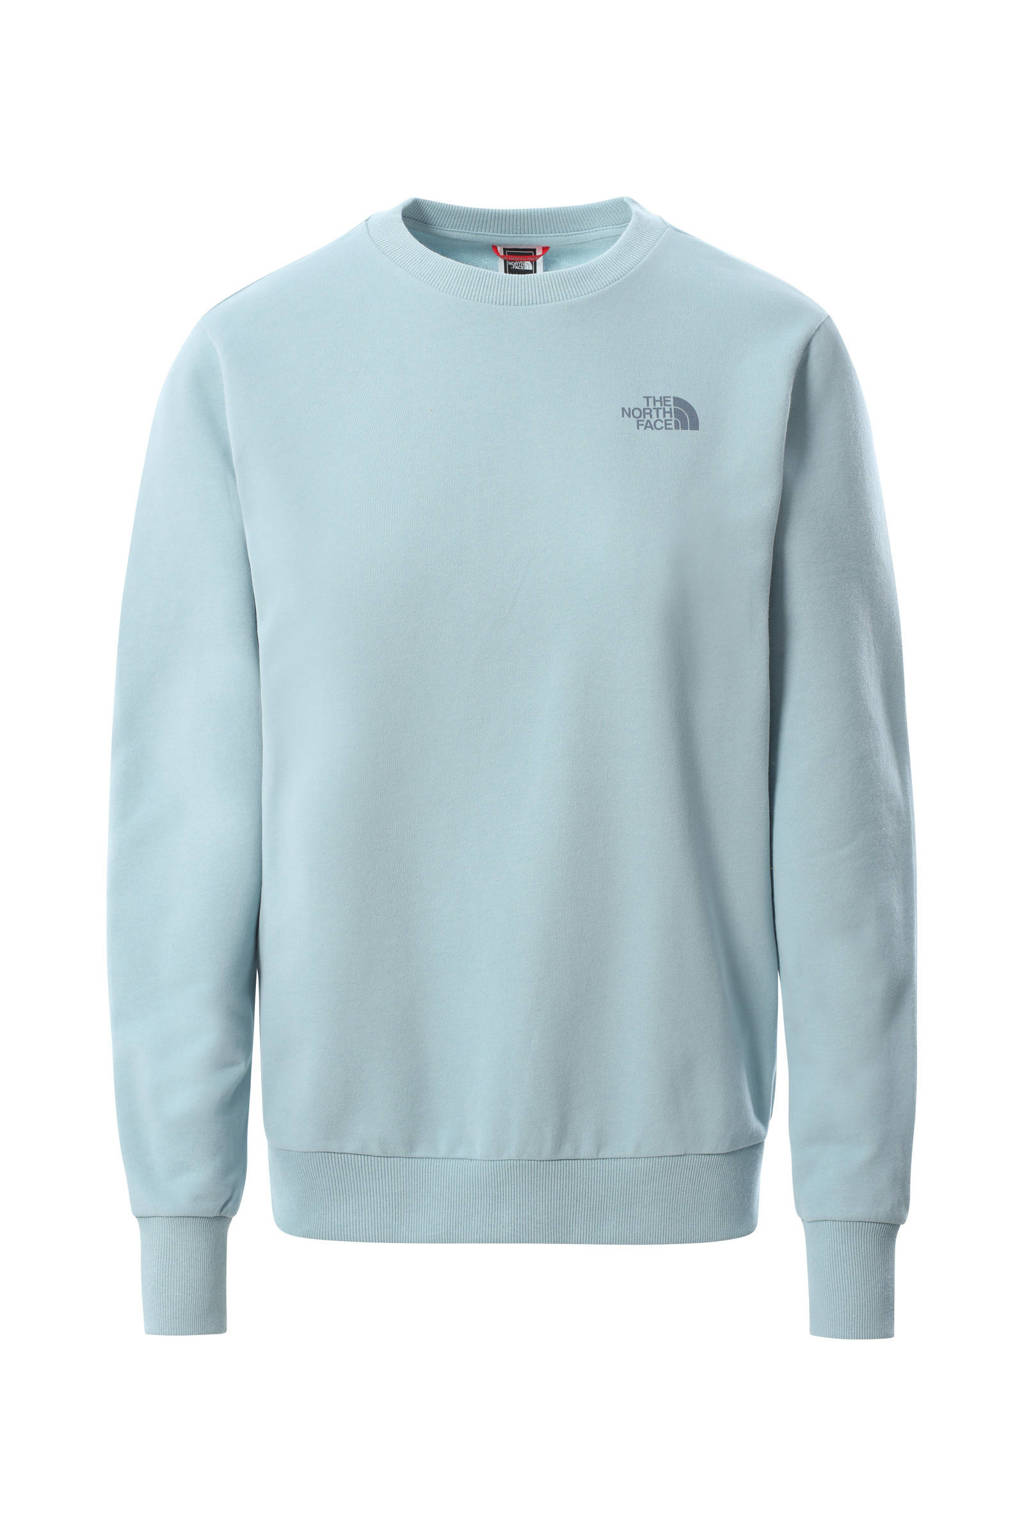 The North Face sweater lichtblauw, Lichtblauw